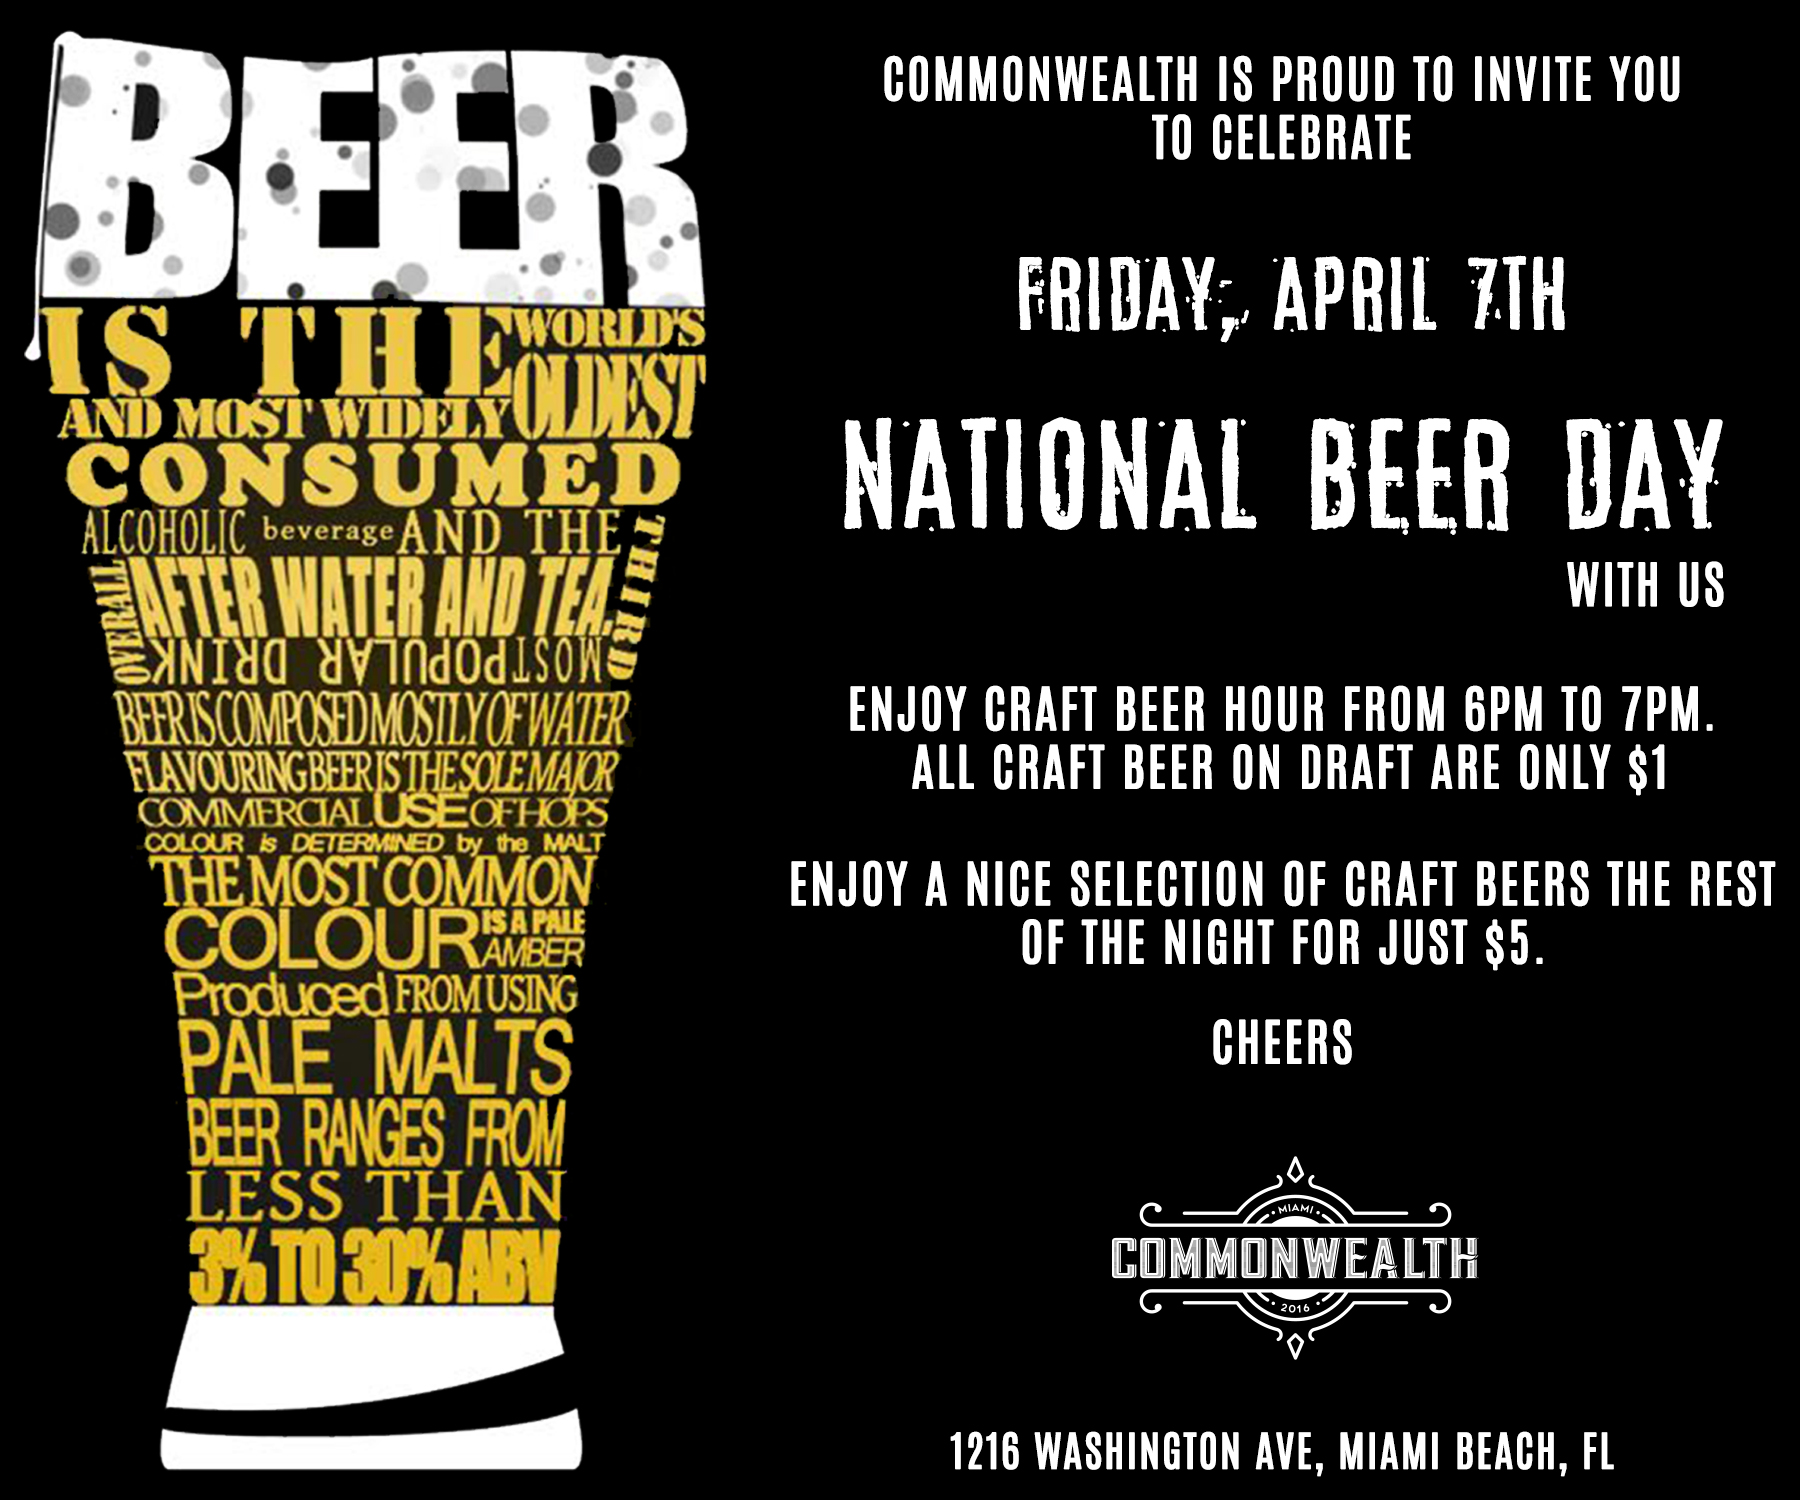 Commonwealth Celebrates National Beer Day With Dollar Beers 4 7 17 The Soul Of Miami